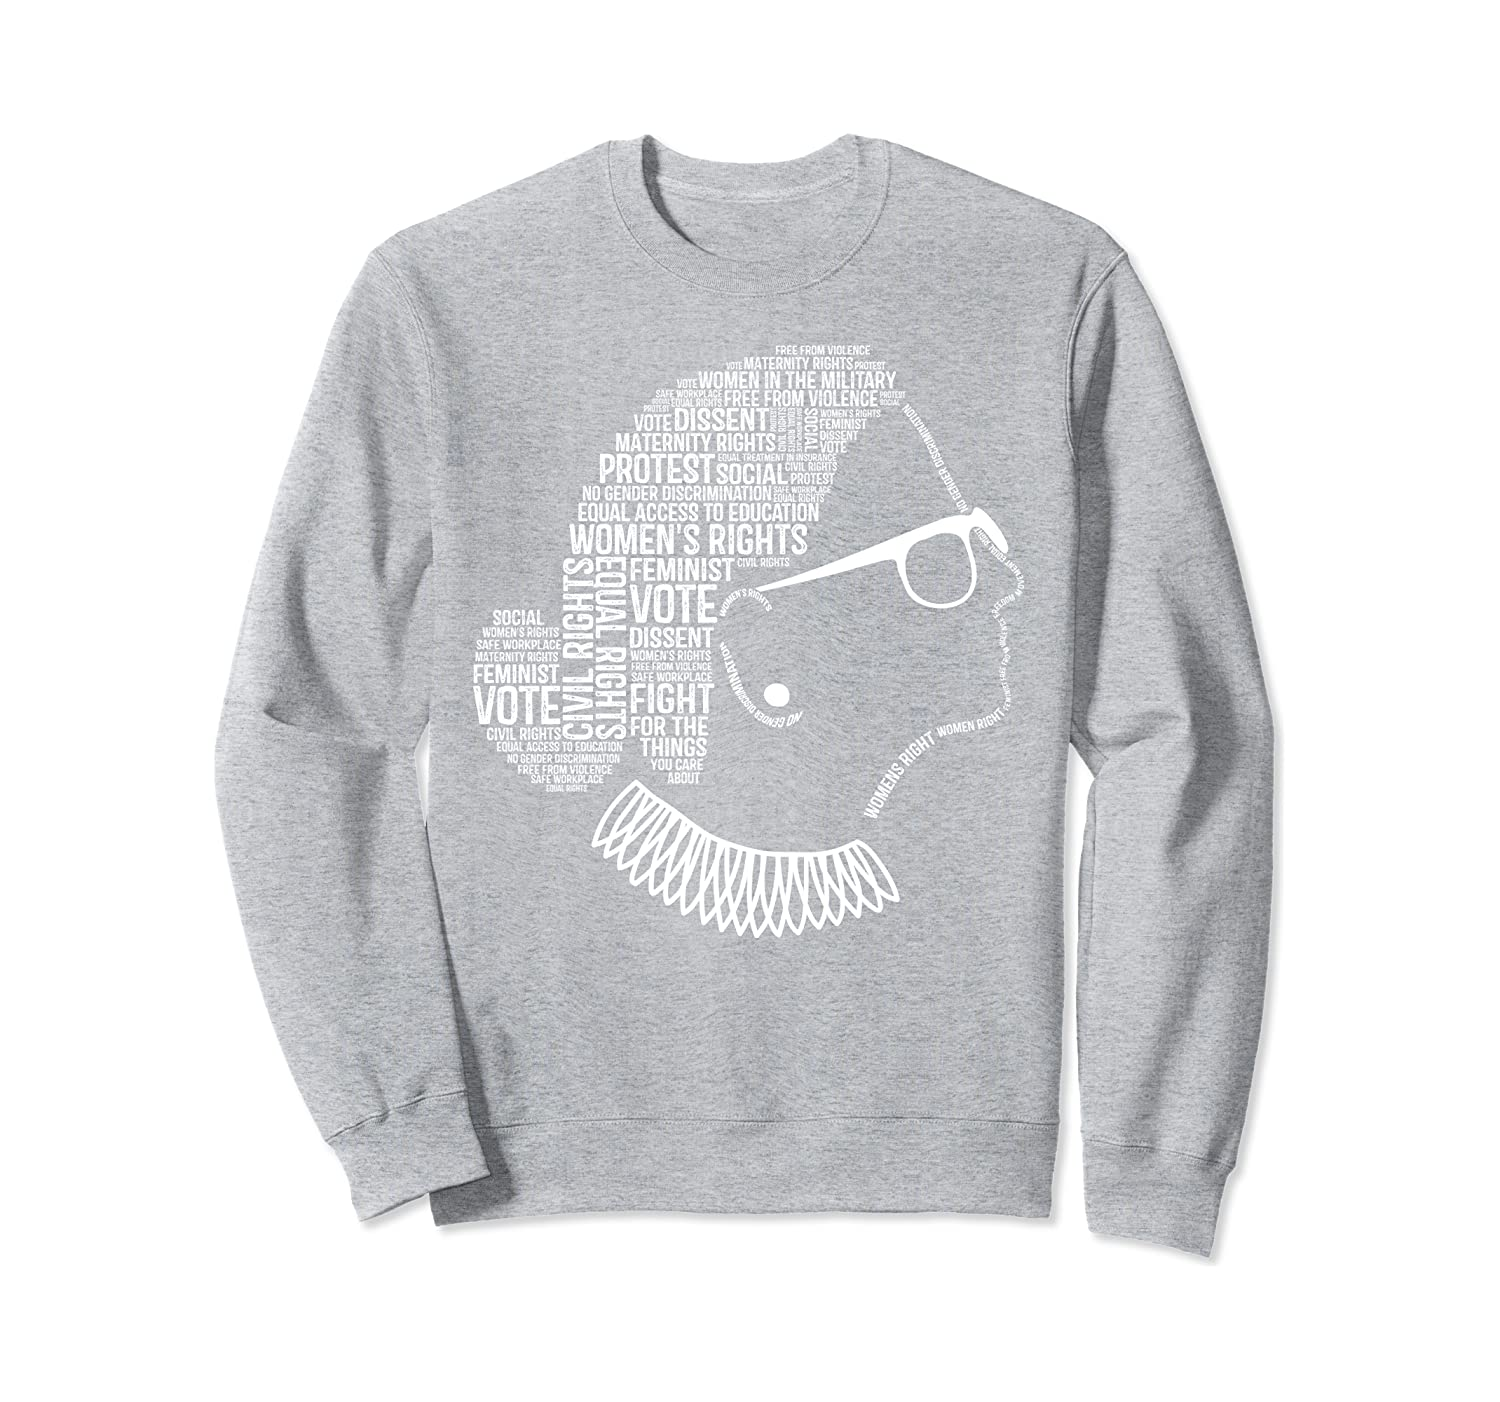 Ruth Bader Ginsburg Sweatshirt Notorious RBG Quote Feminist